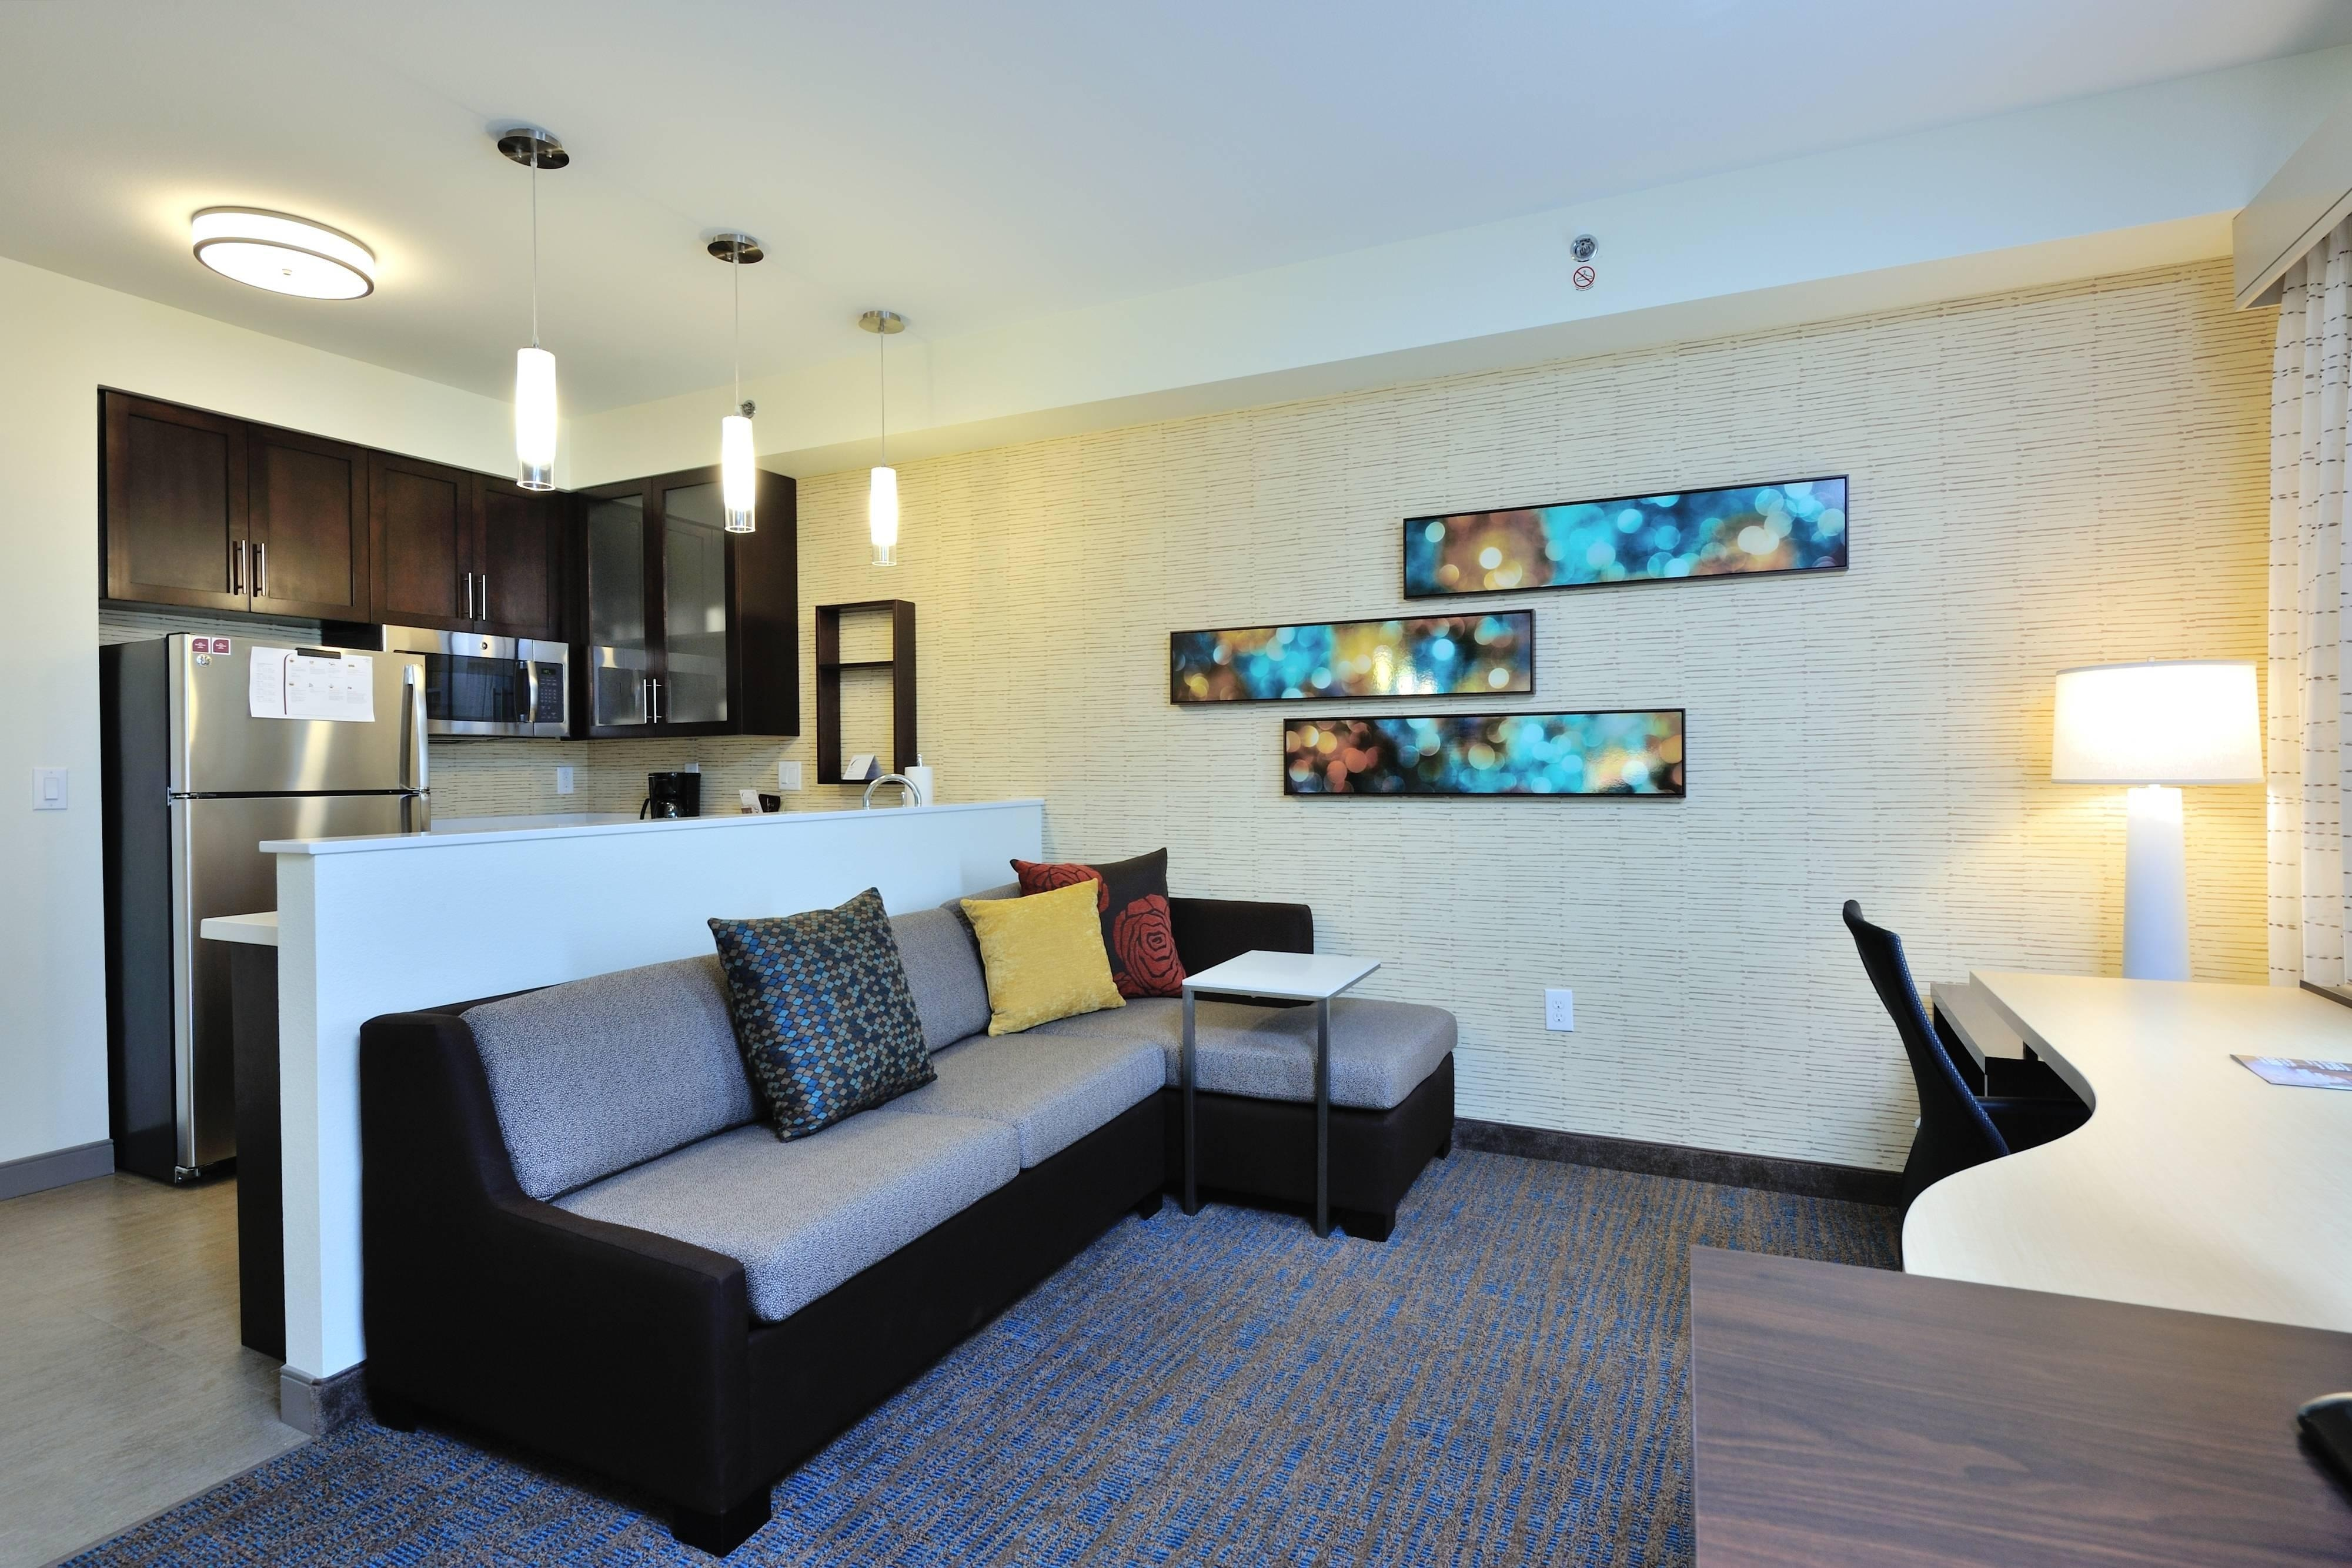 Extended-Stay Hotels in Tomball, TX | Residence Inn Houston Tomball